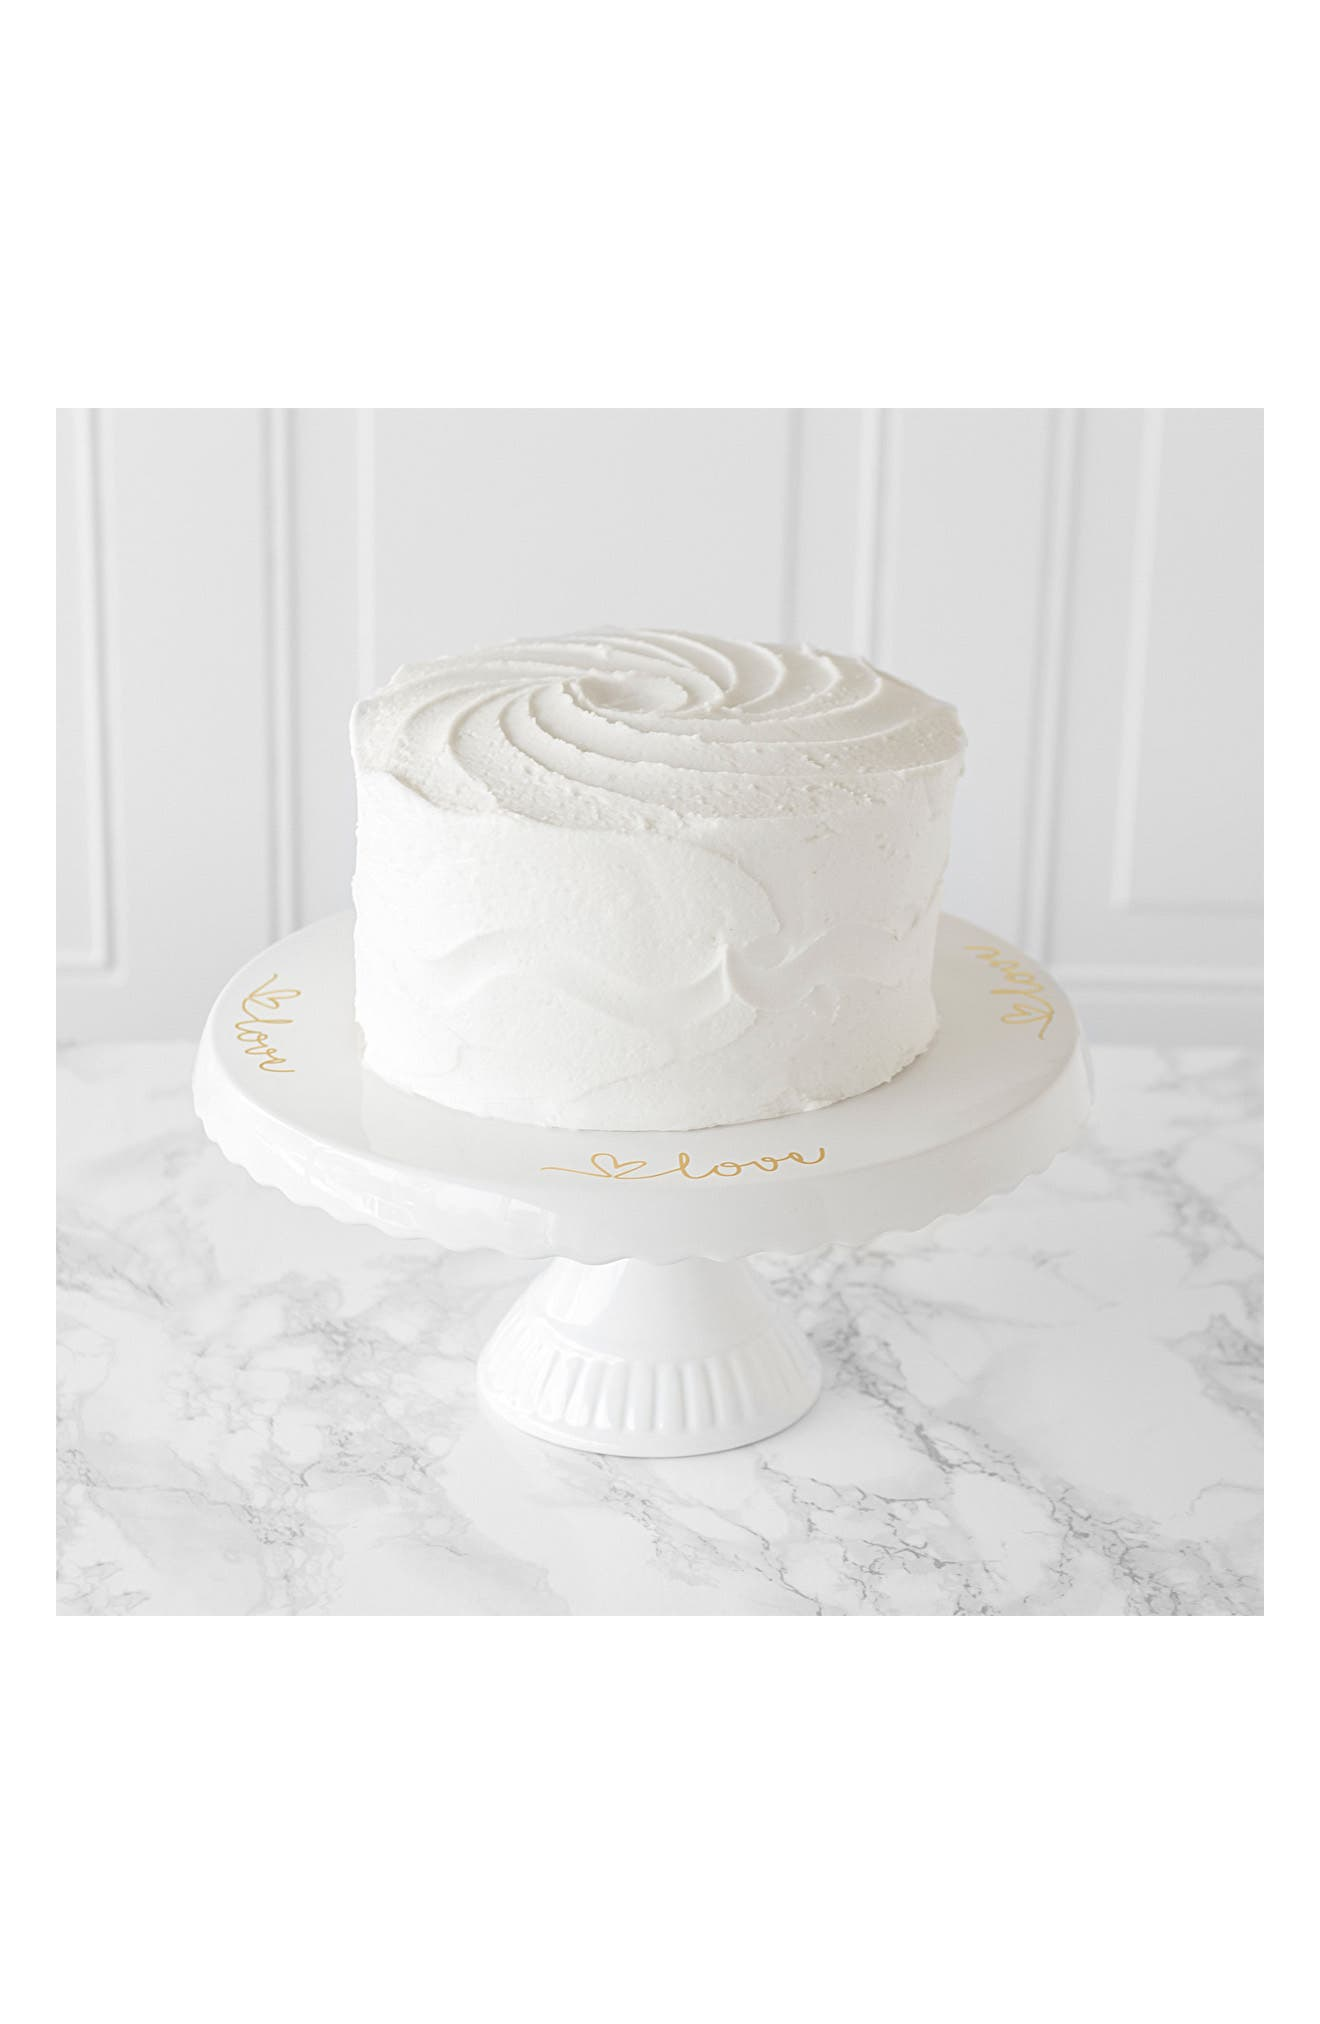 Love Cake Stand,                             Alternate thumbnail 6, color,                             710